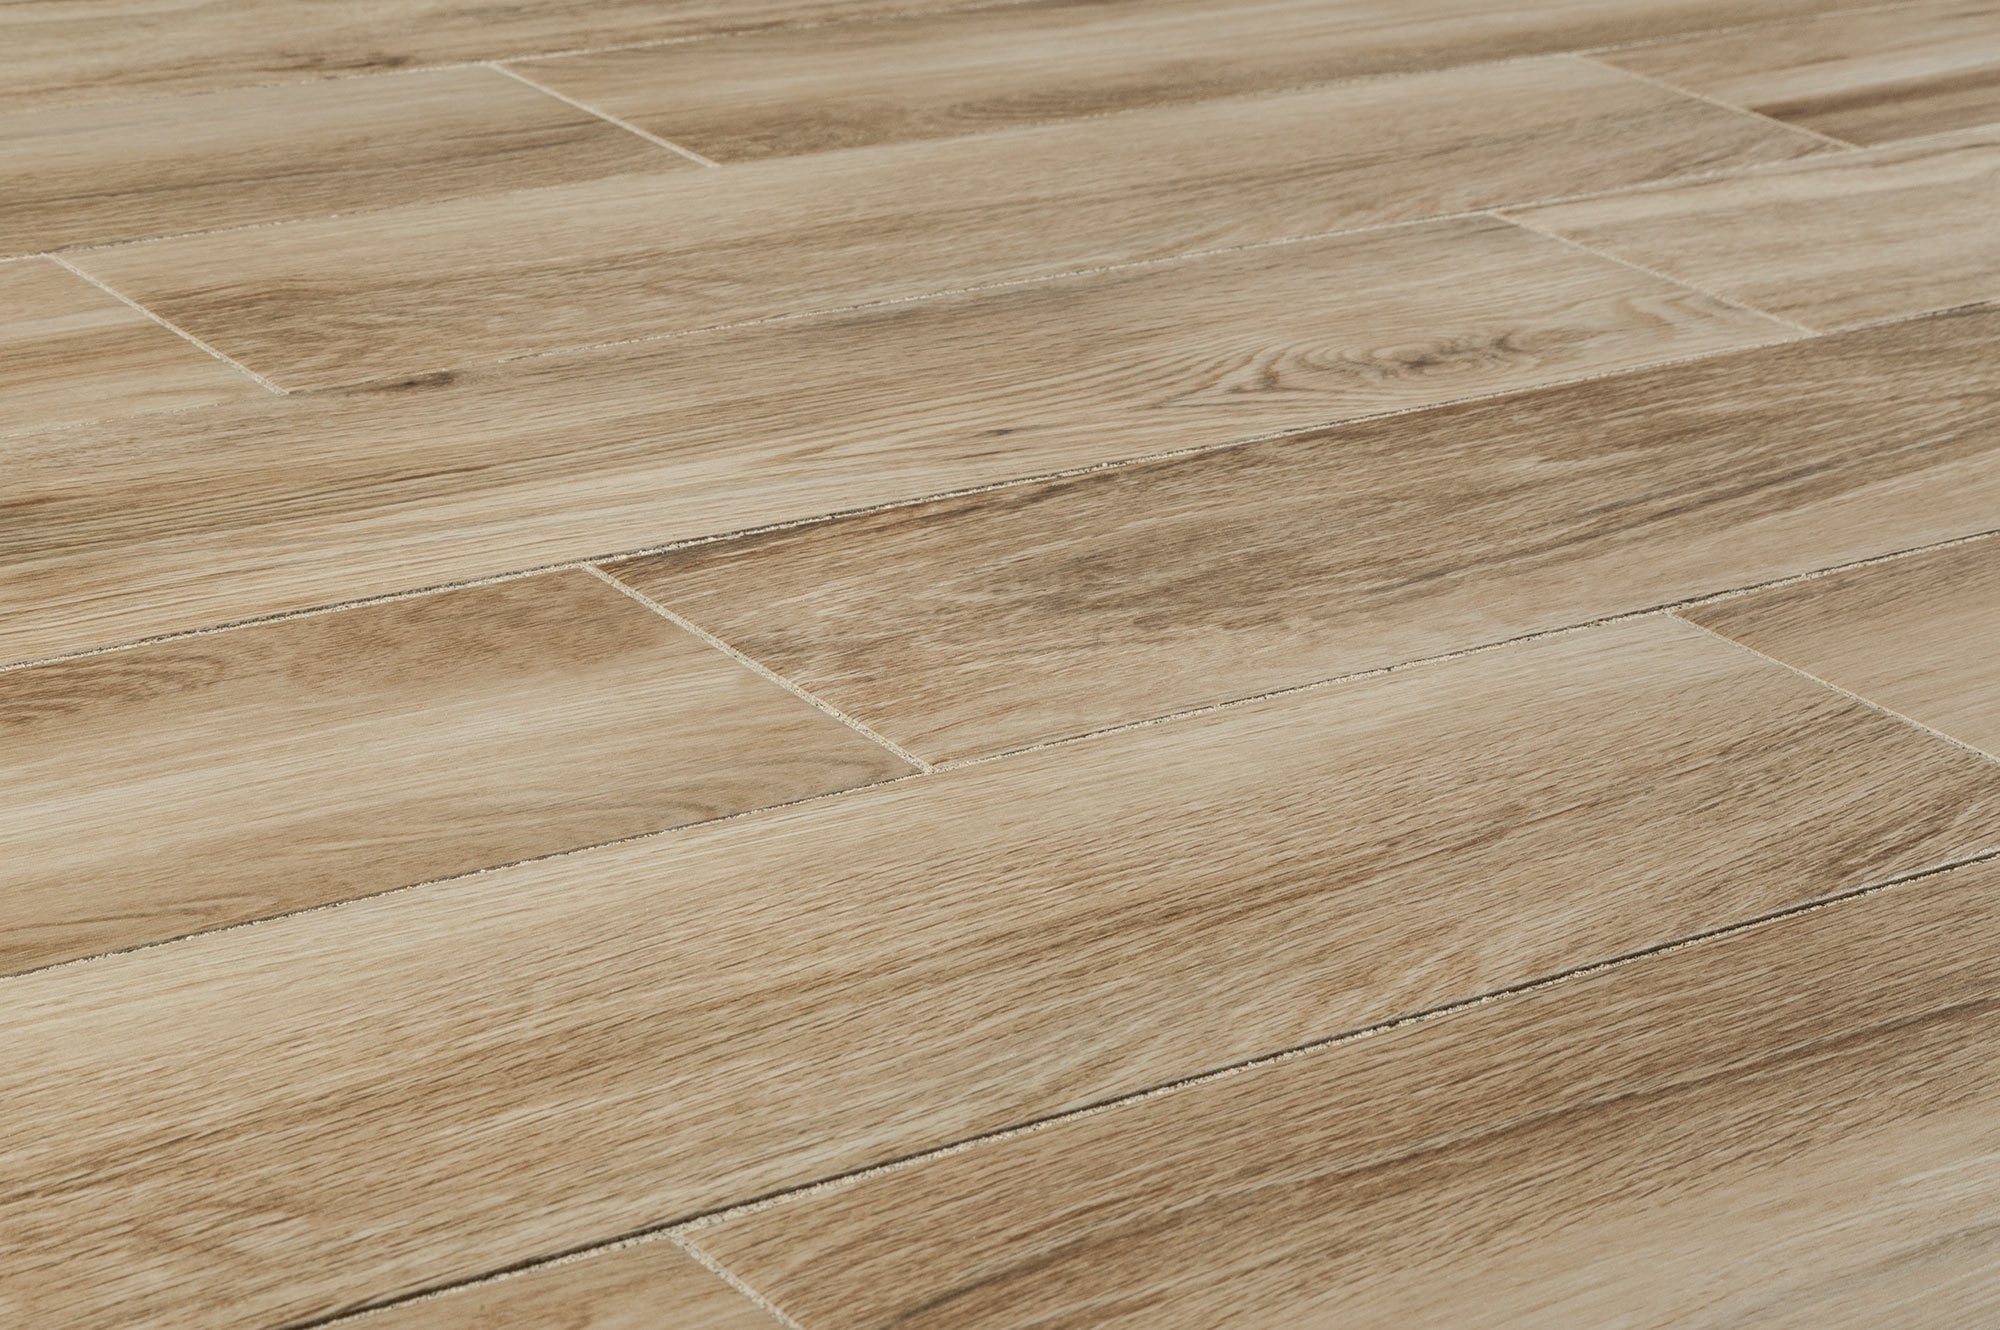 Porcelain tile wood grain flooring roselawnlutheran for Tile and hardwood floor